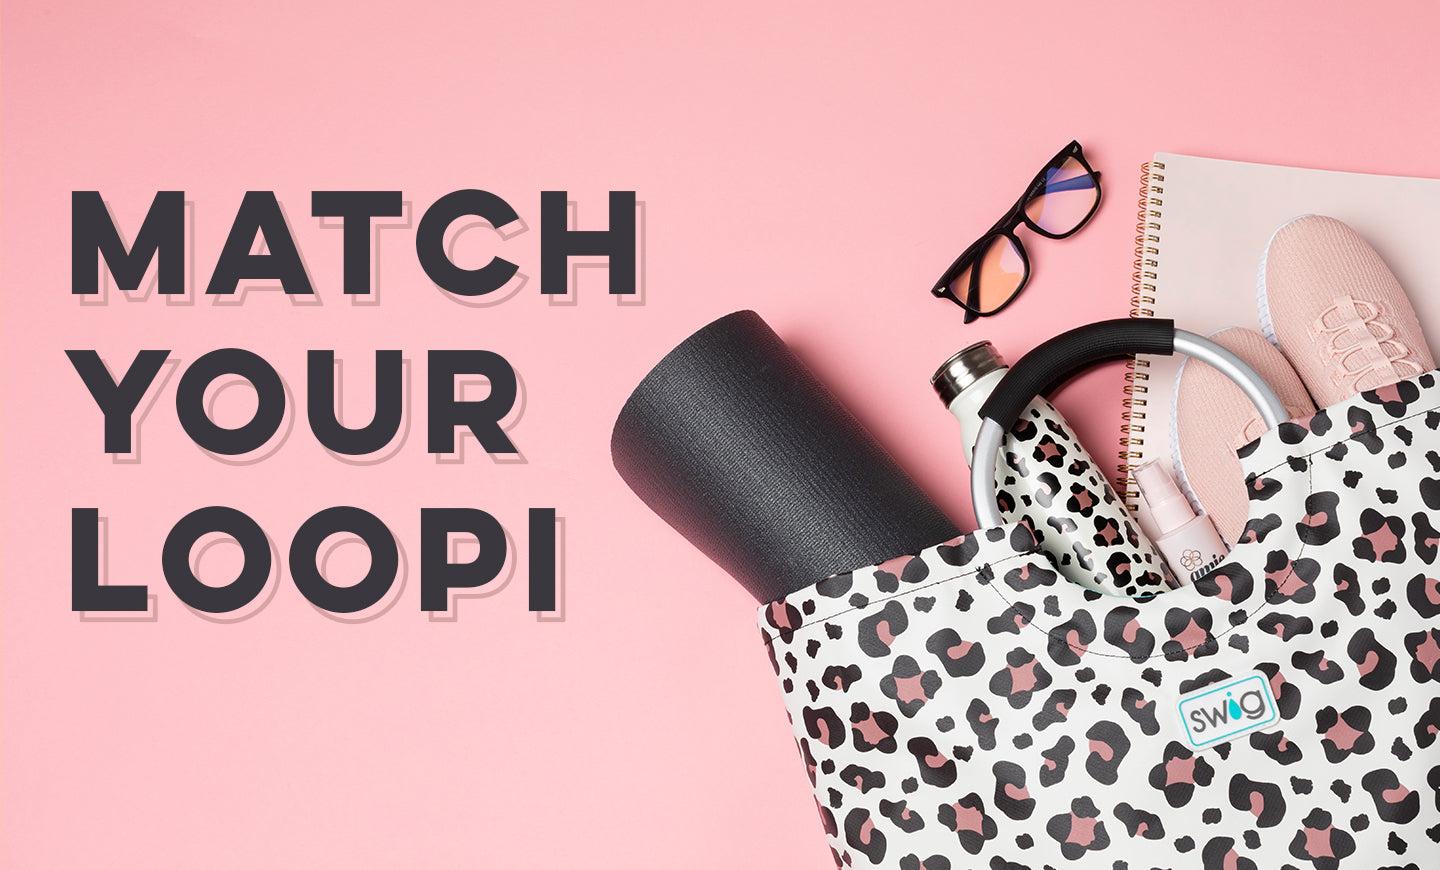 Match Your Loopi